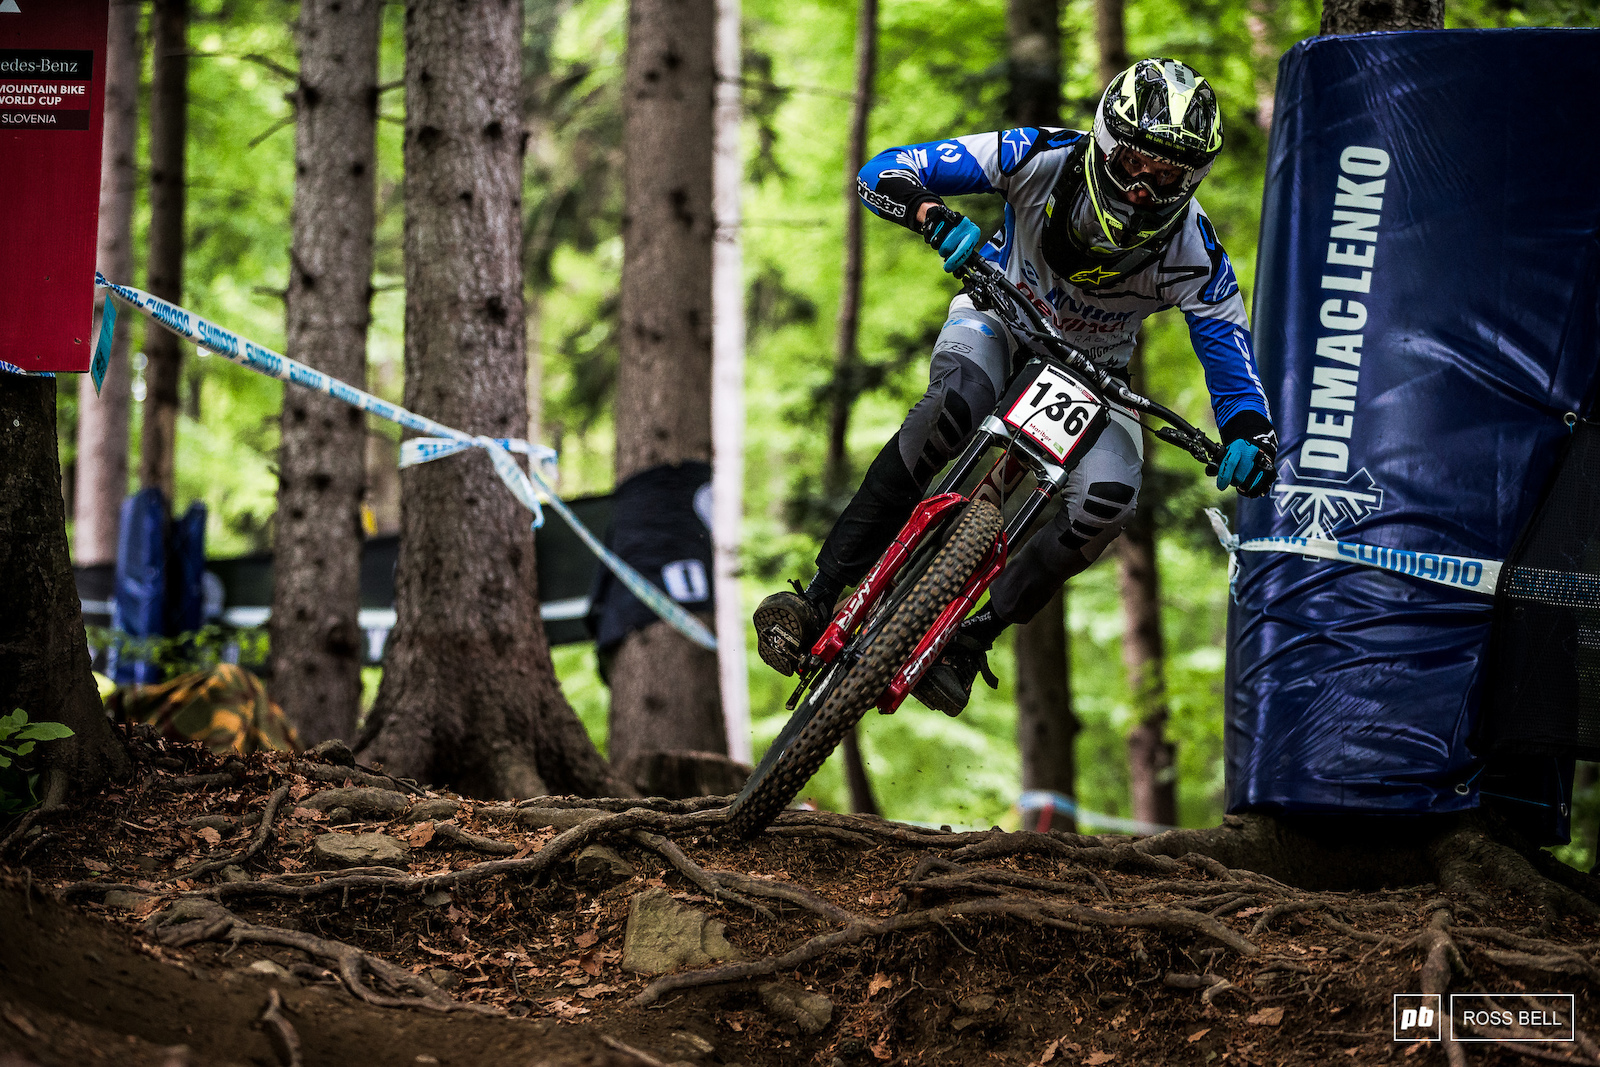 Another local going well is Devinci s Jure Zabjek his 2018 was plagued by injuries but it looks like he s back up to speed now.